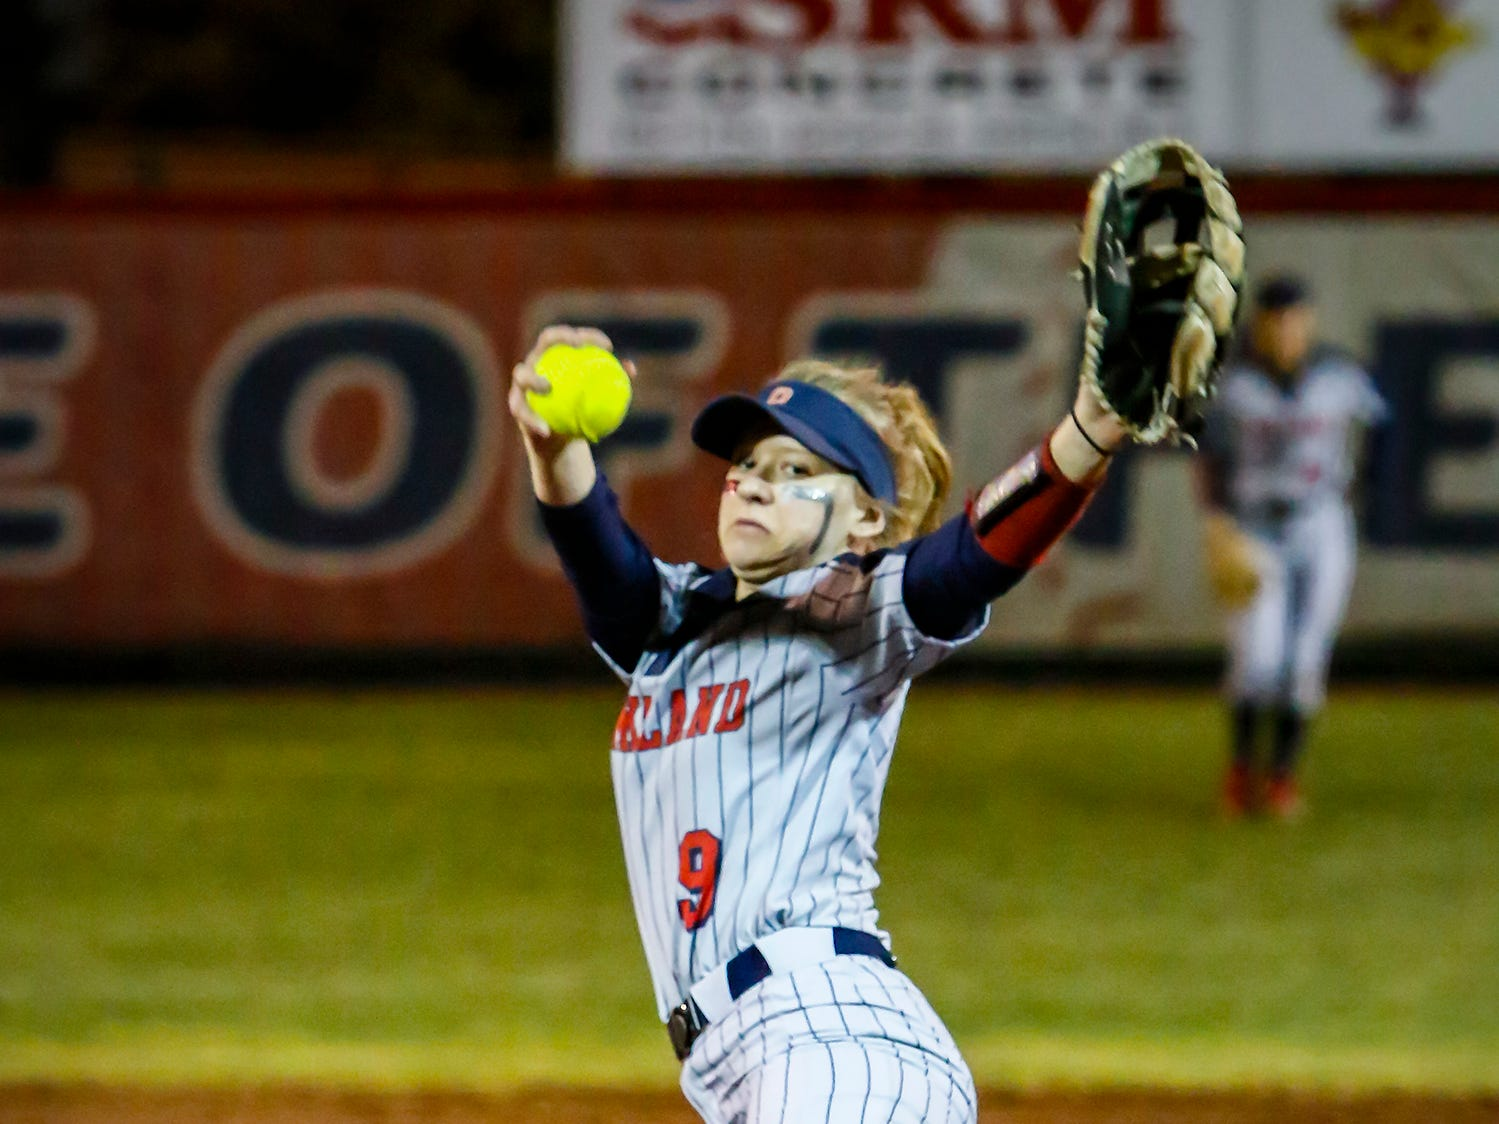 Oakland's Rylee Veron fires a pitch during Monday's game against Stewarts Creek.